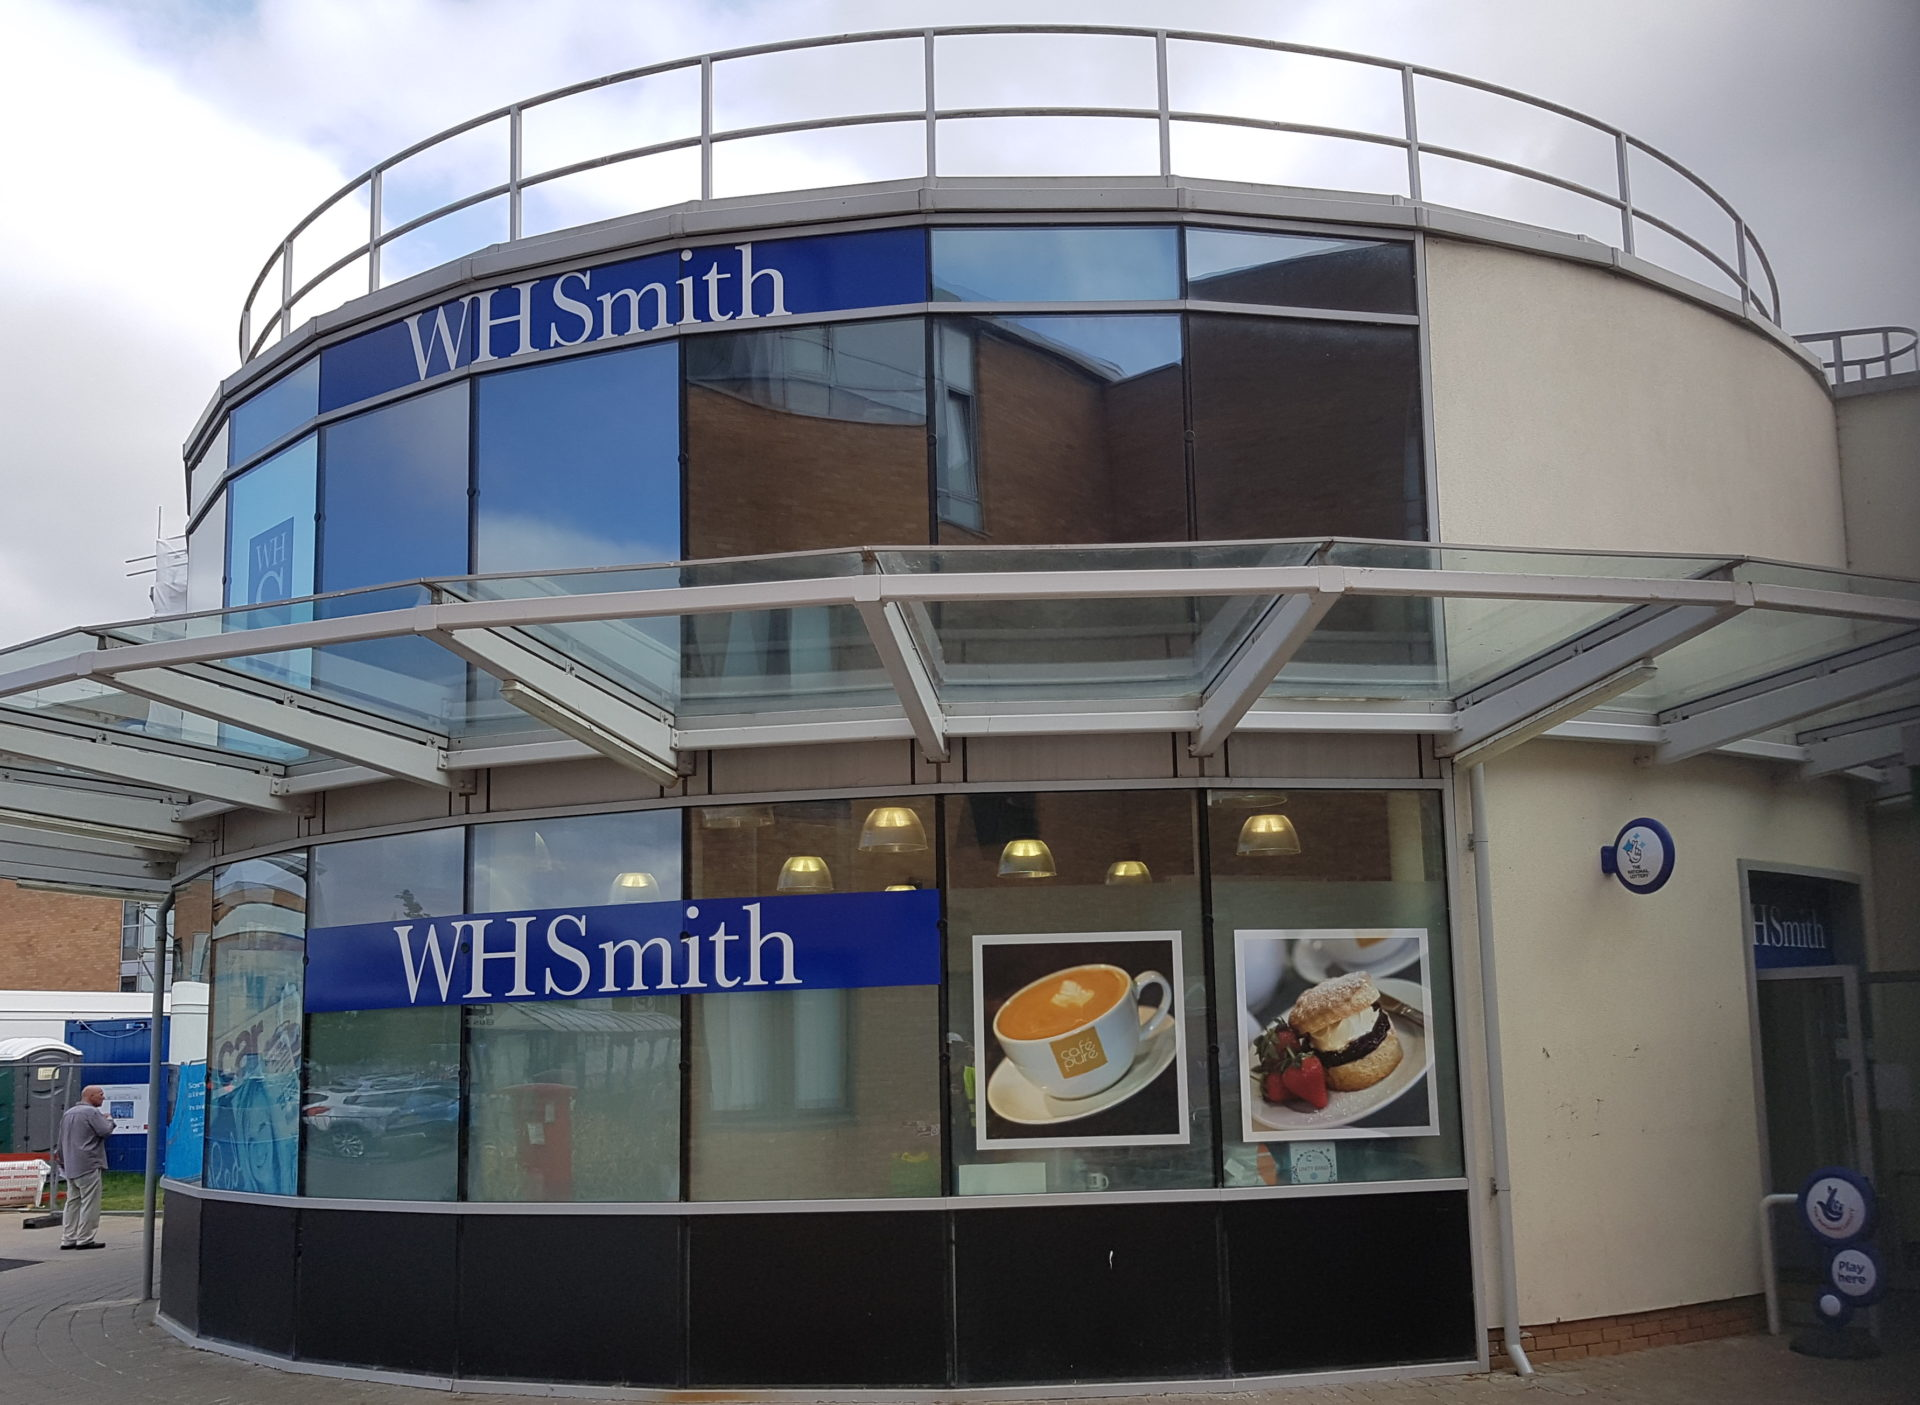 Shop front spraying WH Smith